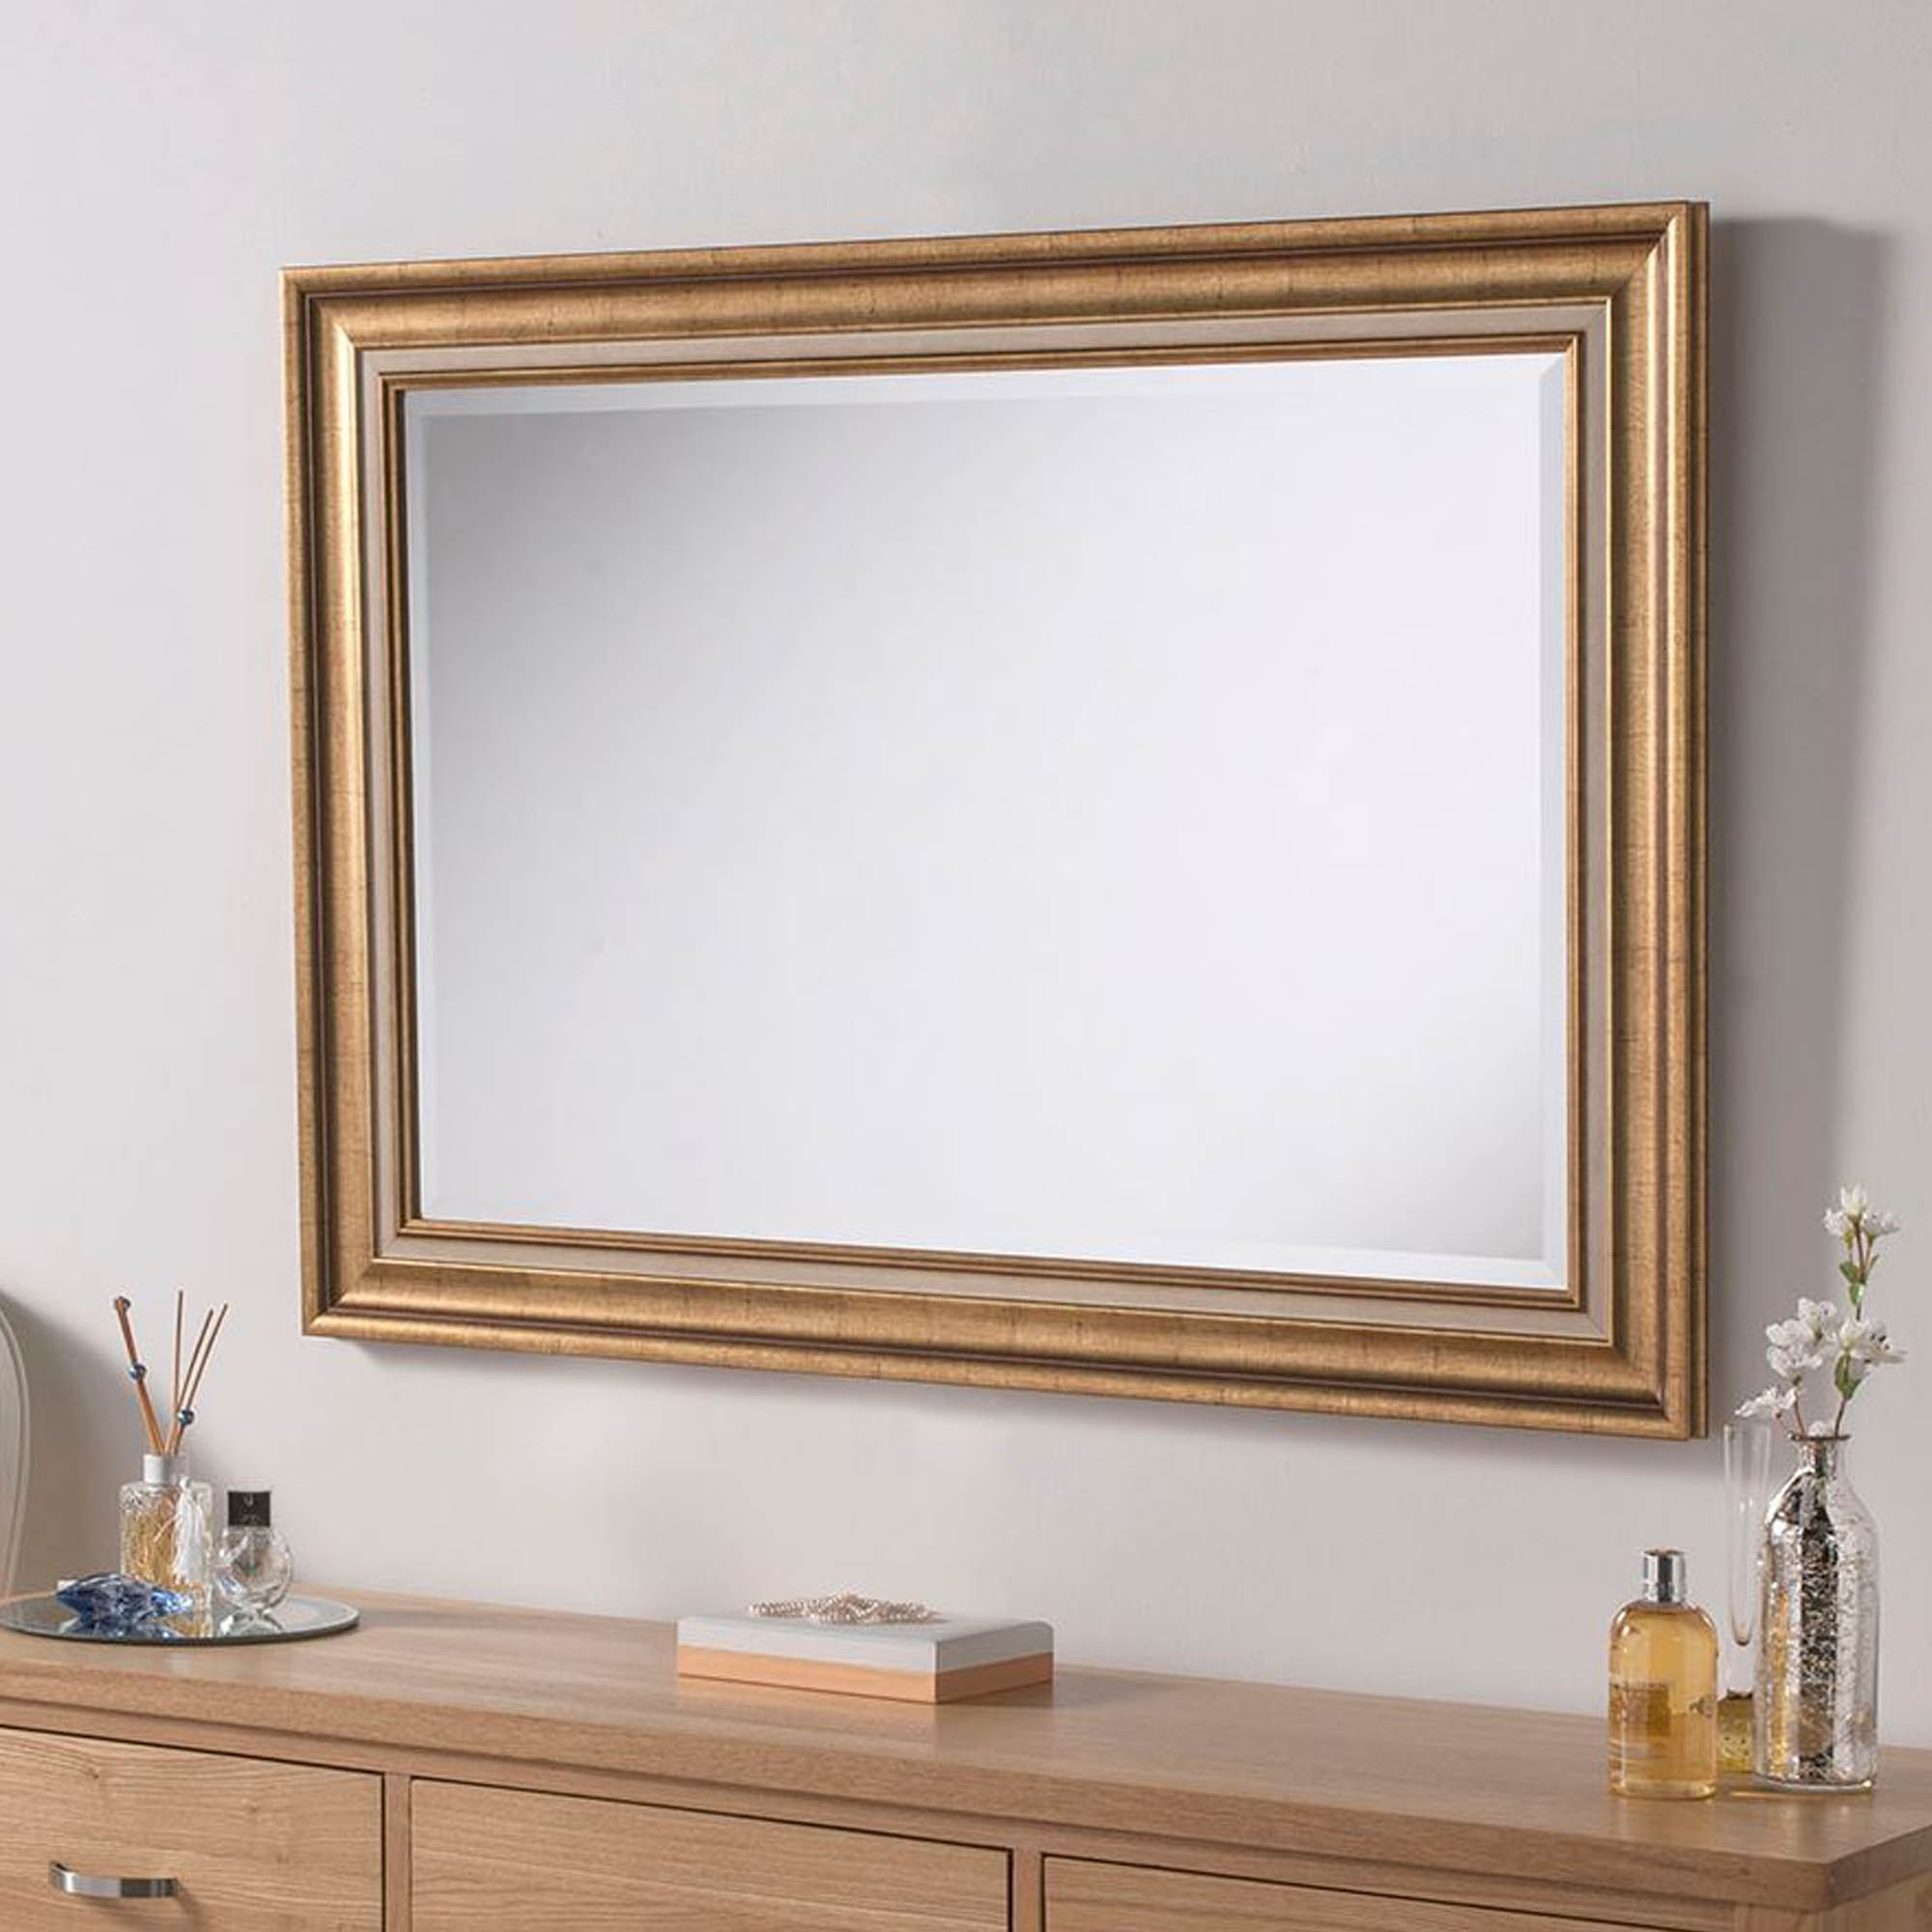 Rectangular Gold Aged Frame Wall Mirror Within Most Current Gold Framed Wall Mirrors (Gallery 1 of 20)